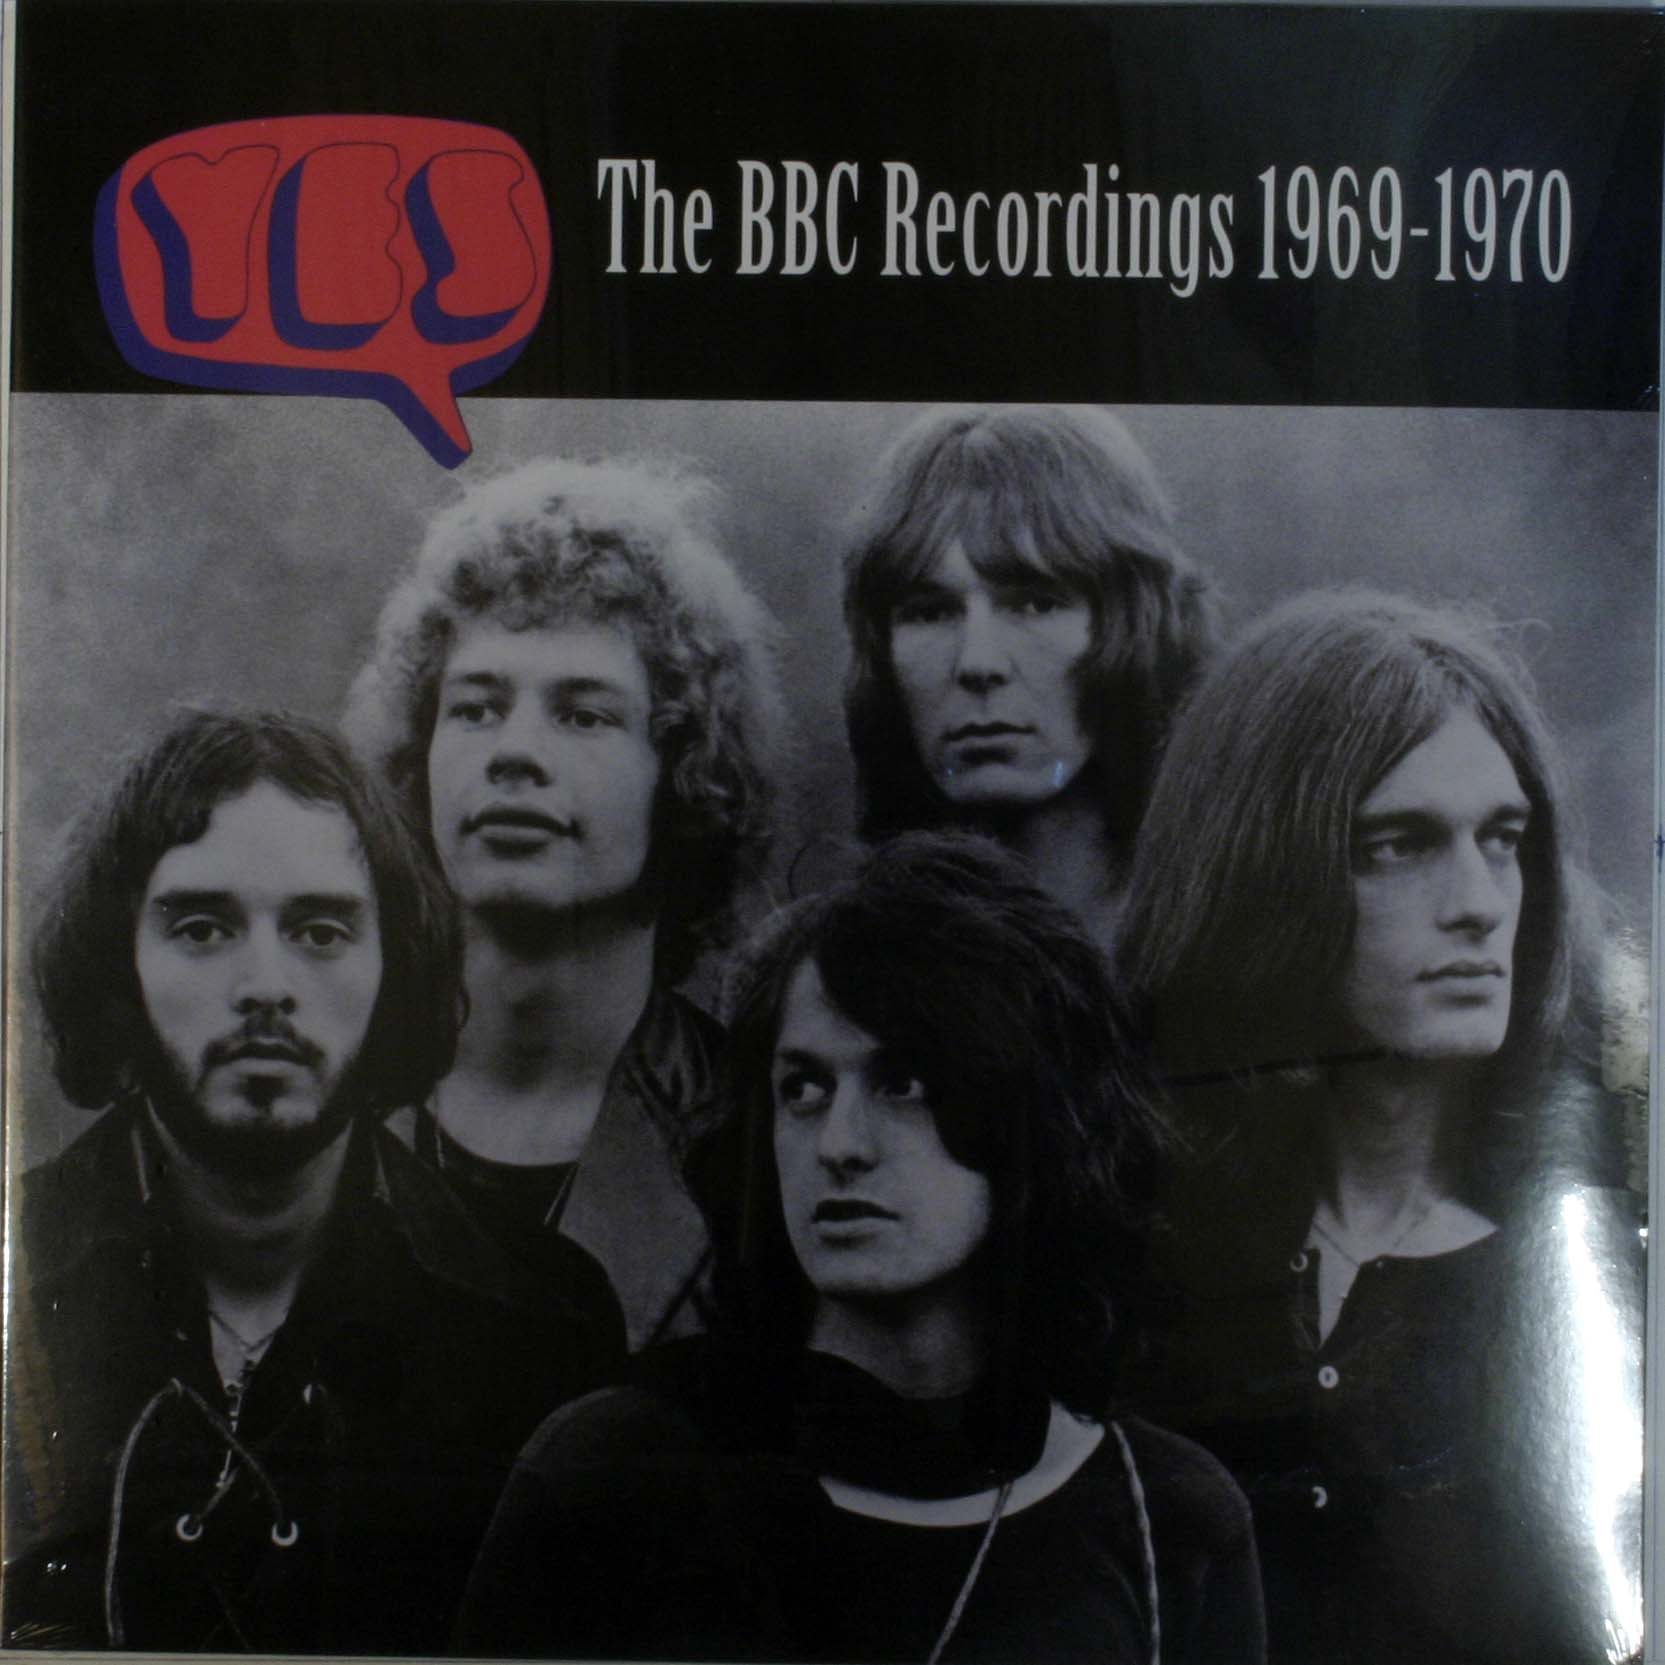 Bbc Recordings 1969